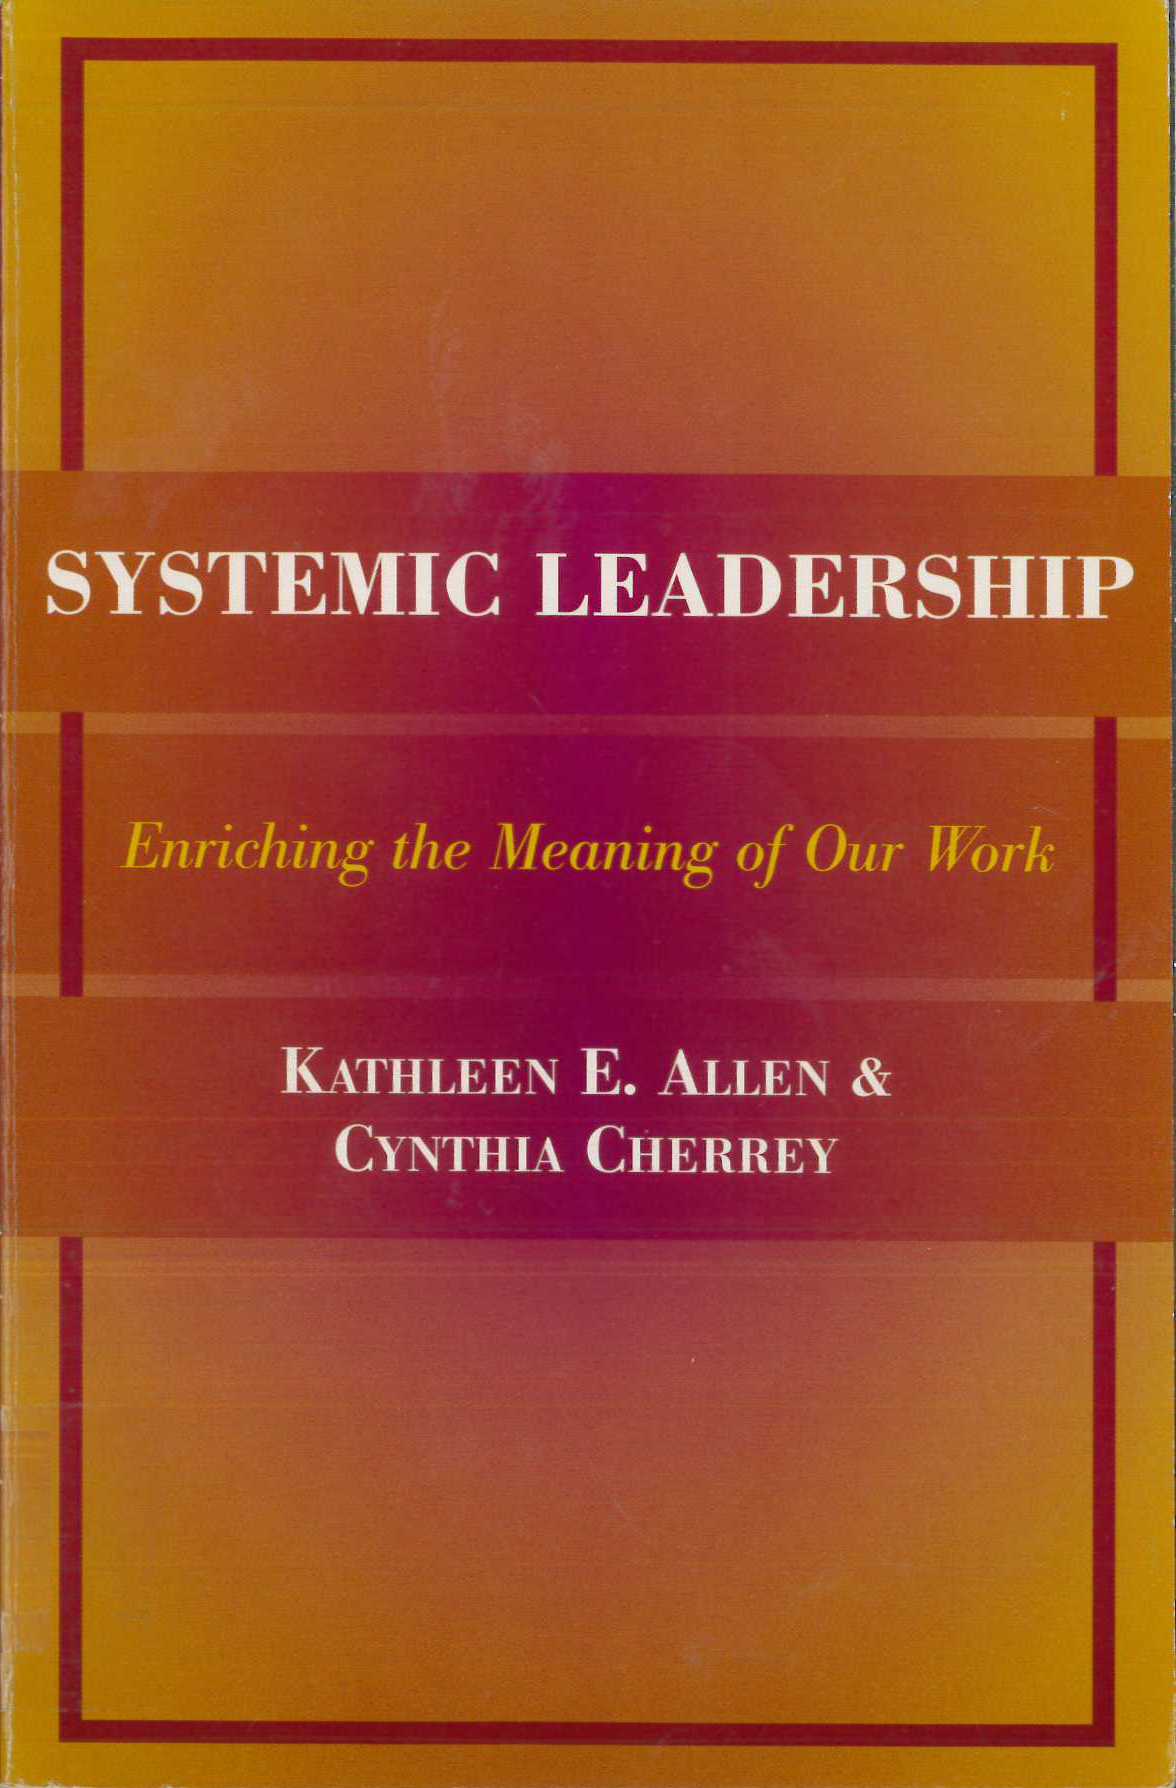 Systemic Leadership